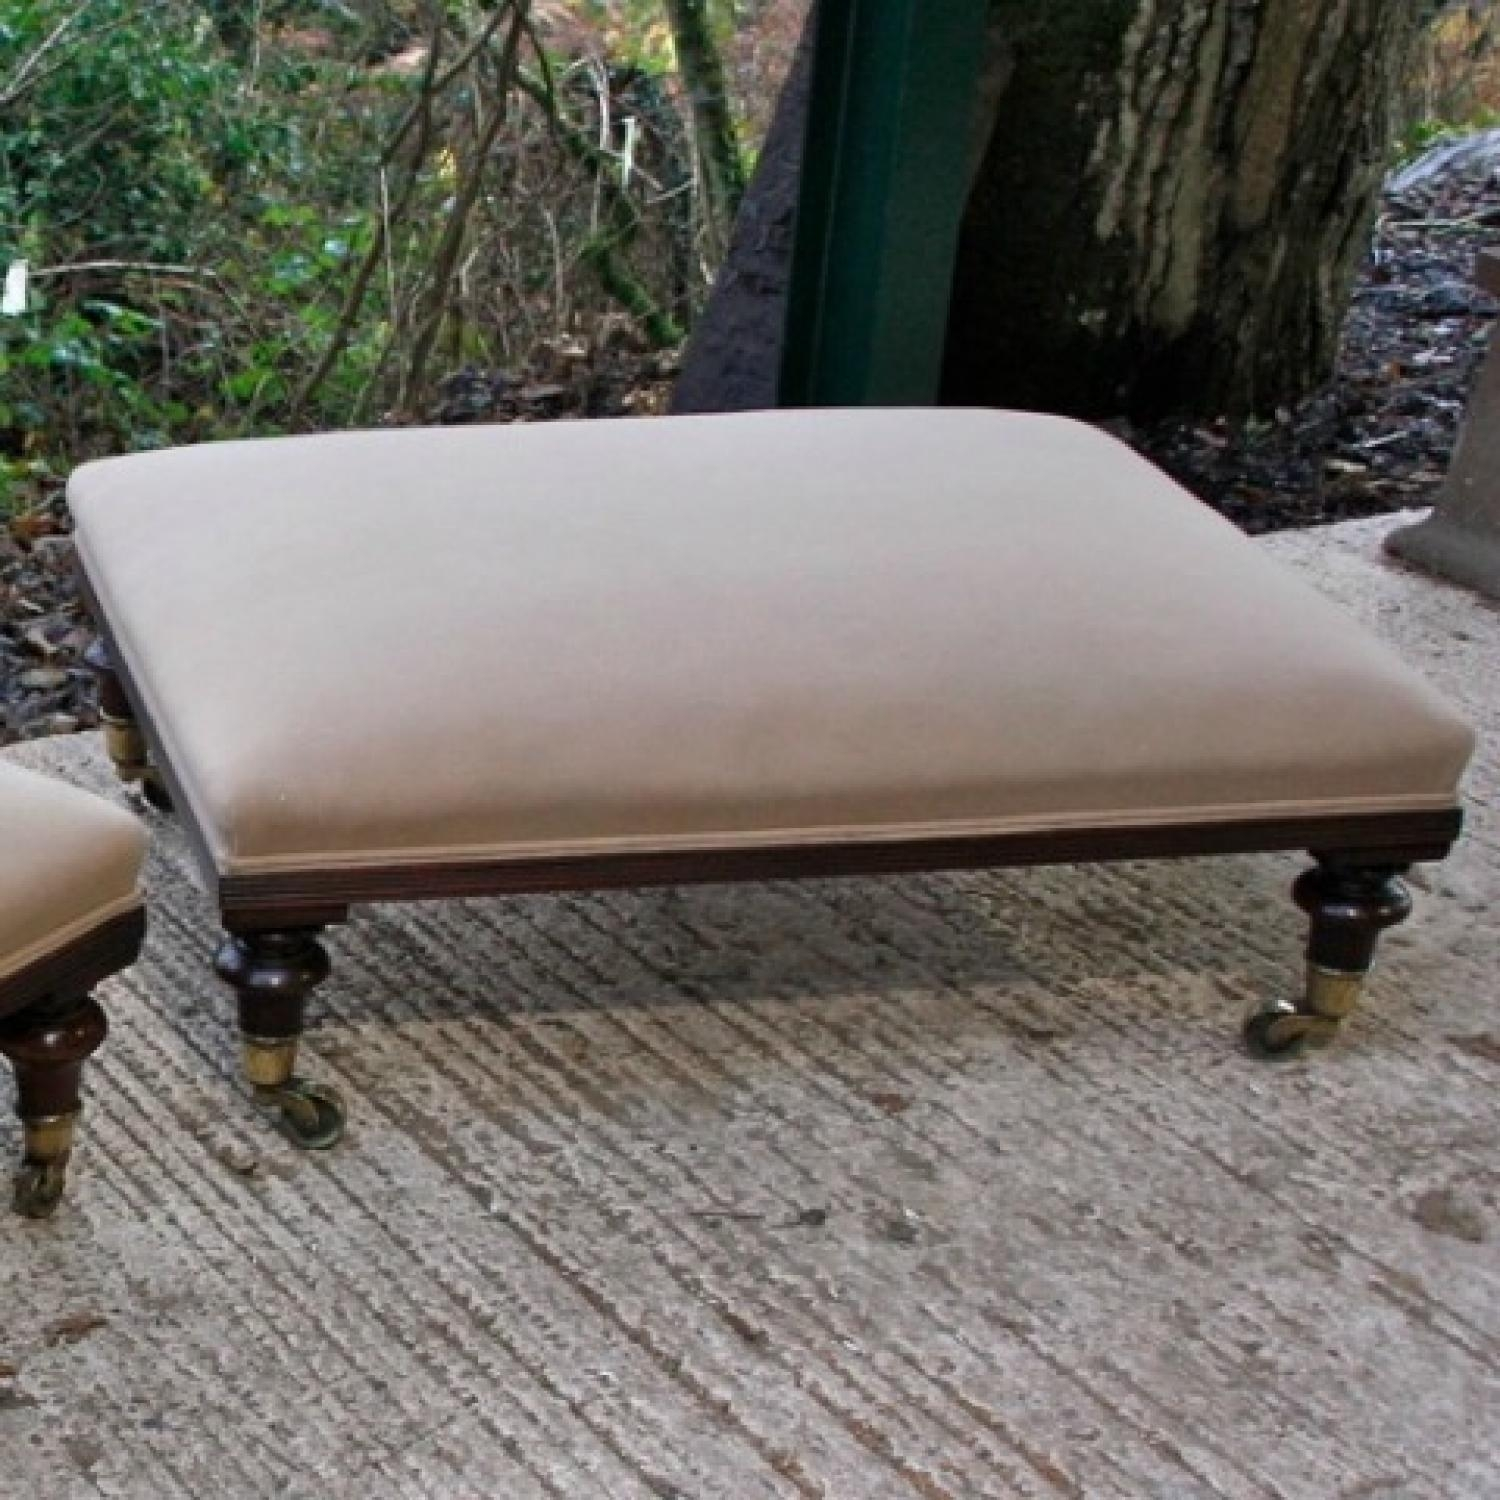 A Pair Of Large Footstools C1890 In Warehouse Seating Intended For Large Footstools (Image 1 of 15)